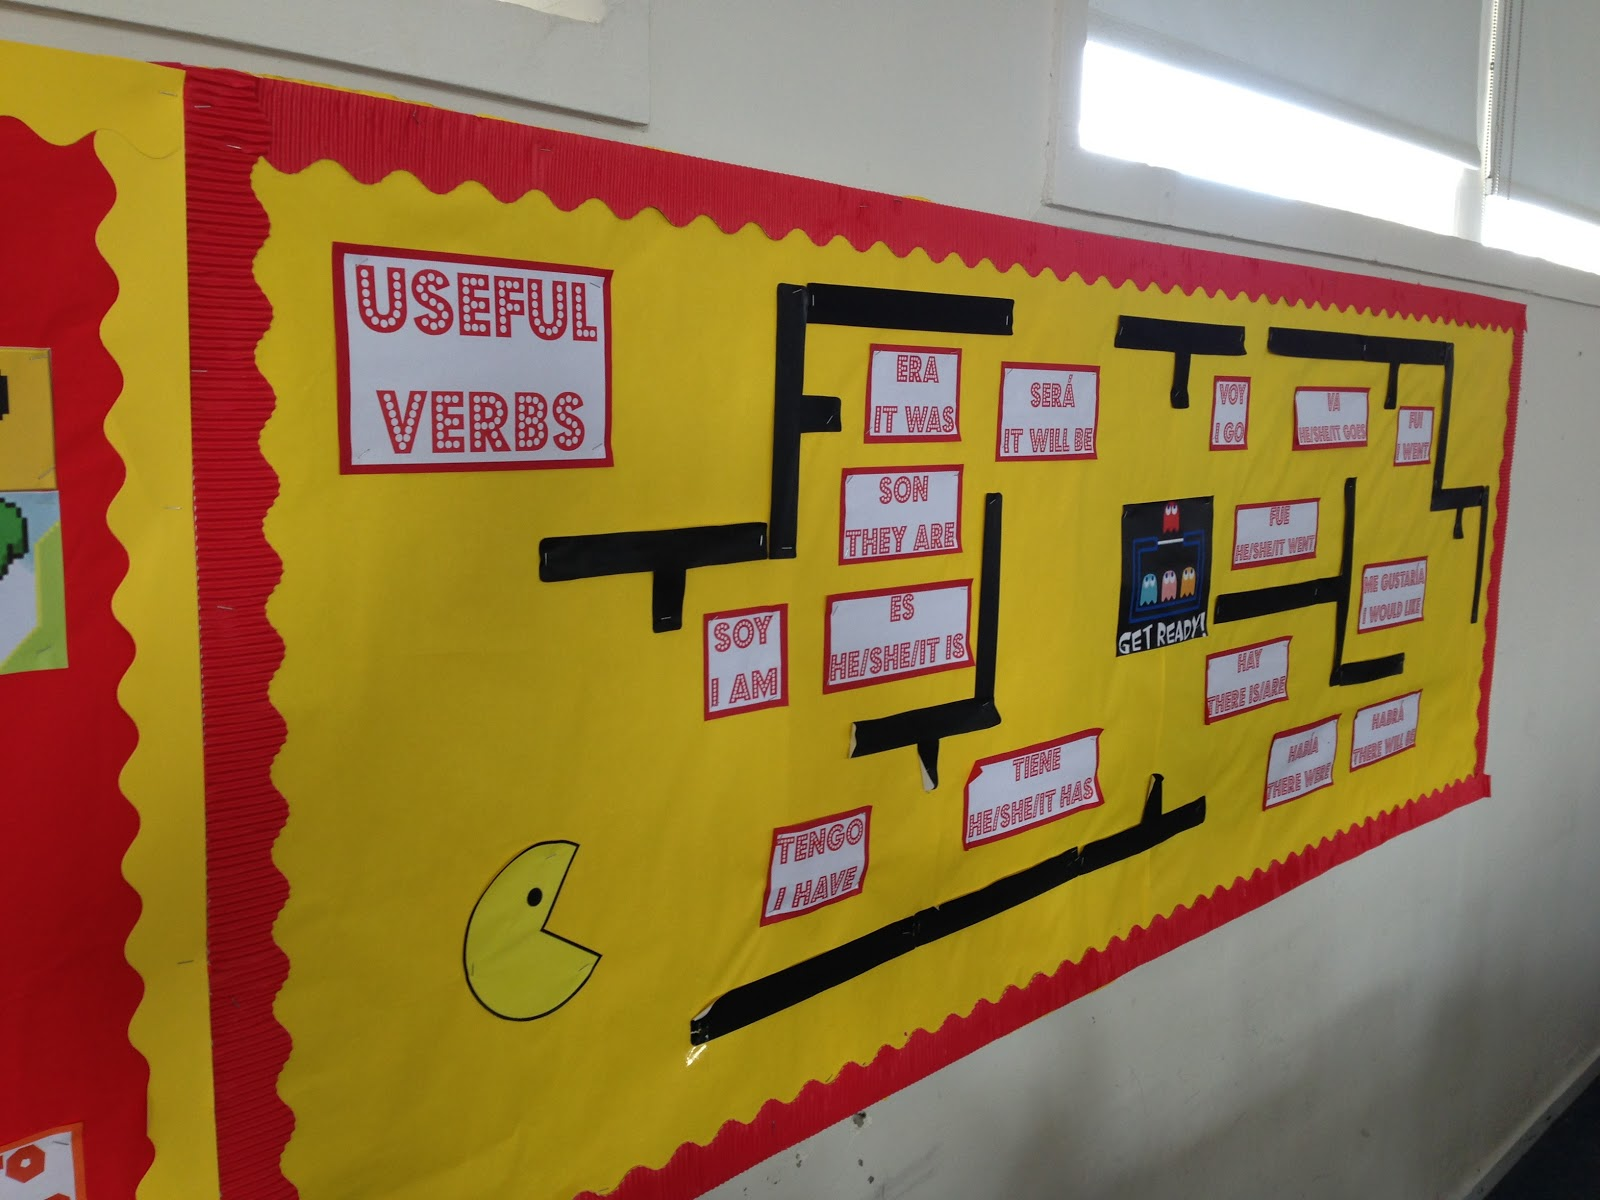 Mr Collins Mathematics Blog: Displays for Learning